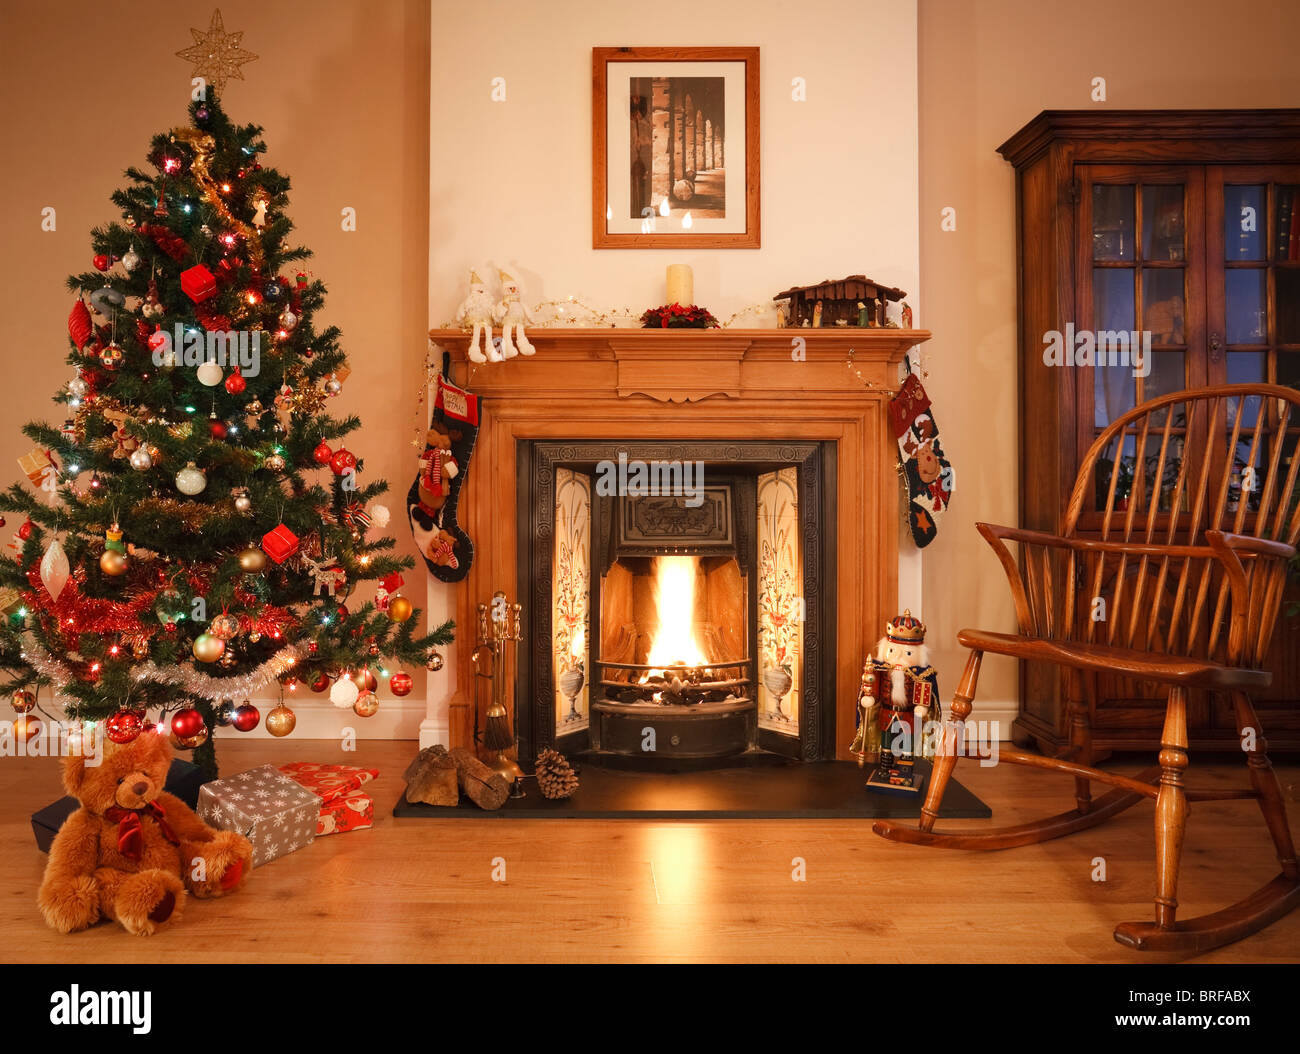 Living room with open fire, christmas decorations and tree. [Picture above fireplace is photographers own work] - Stock Image